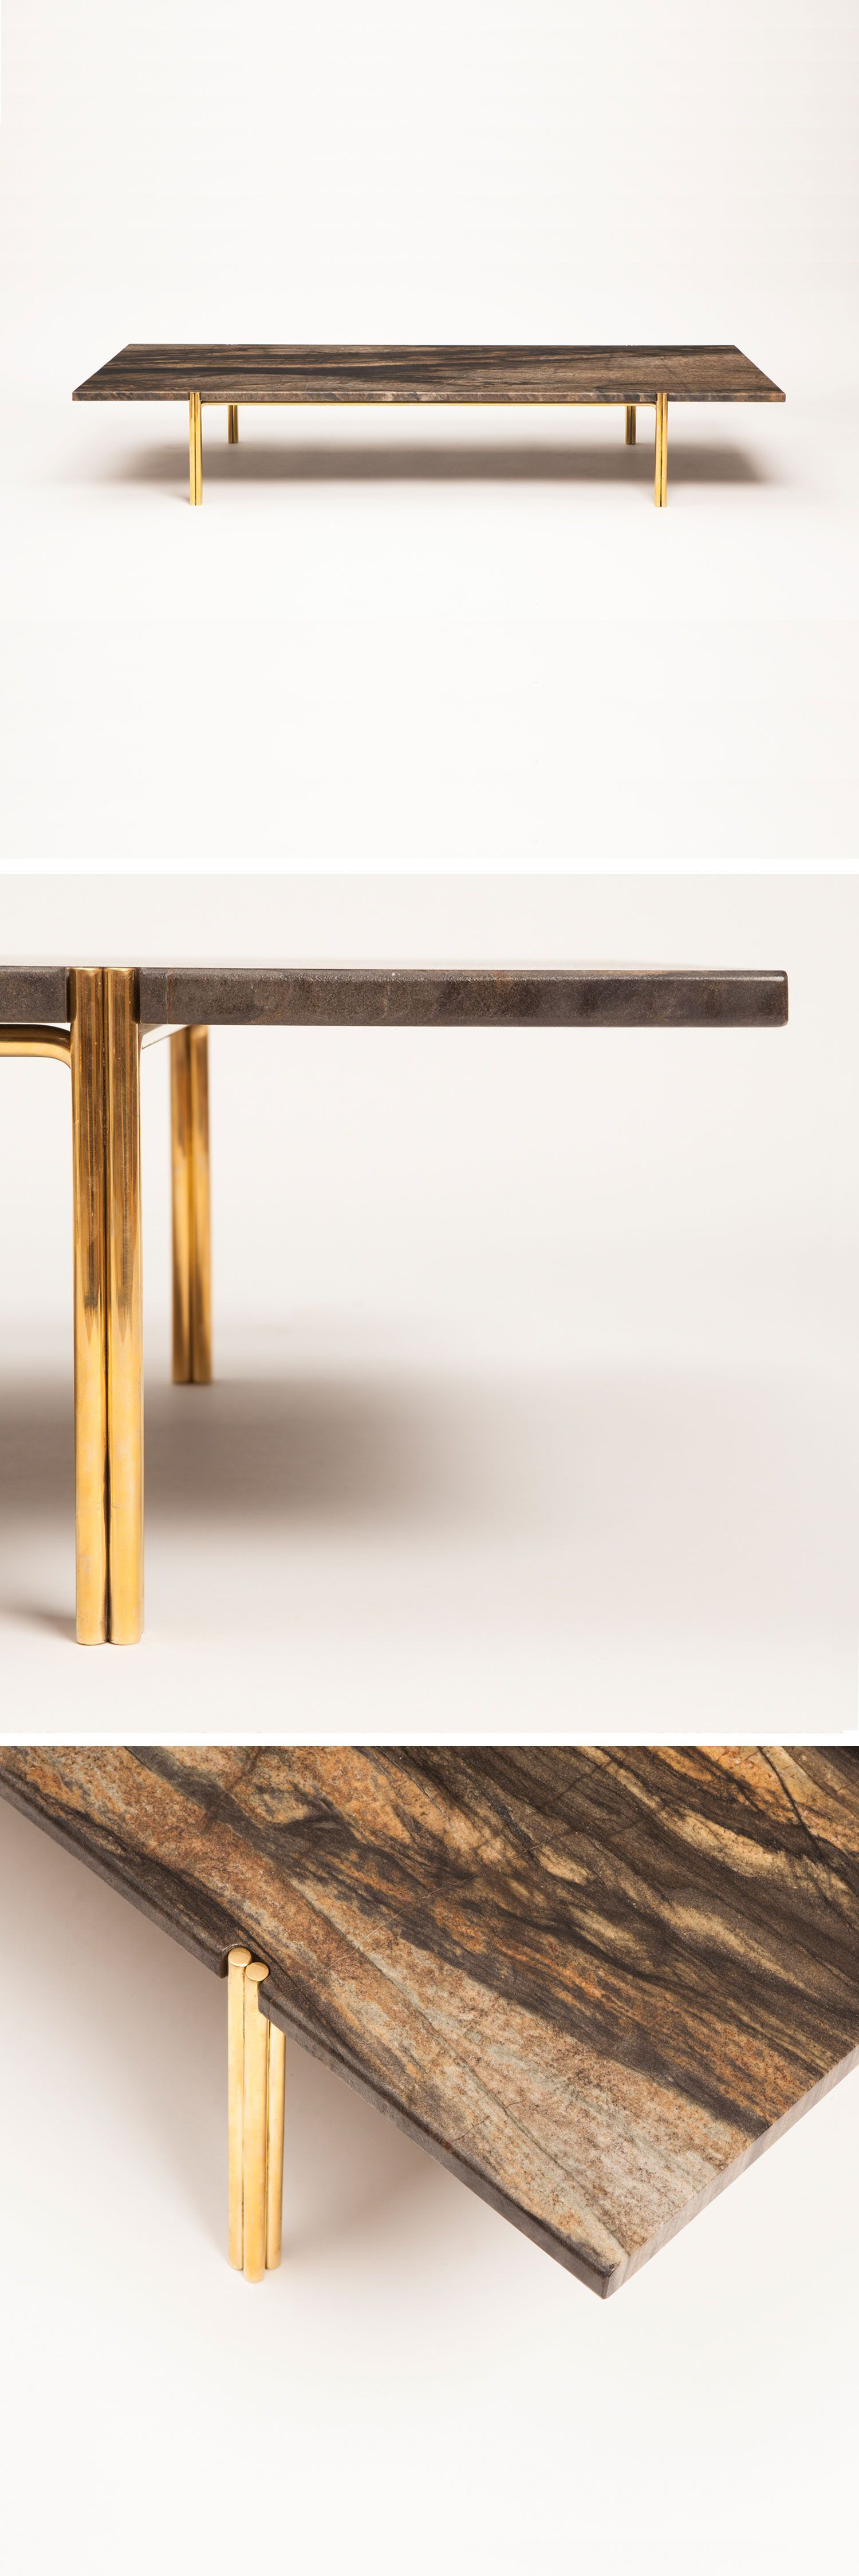 Modern Glamour With Luxury Furniture Design Brands - Discover The